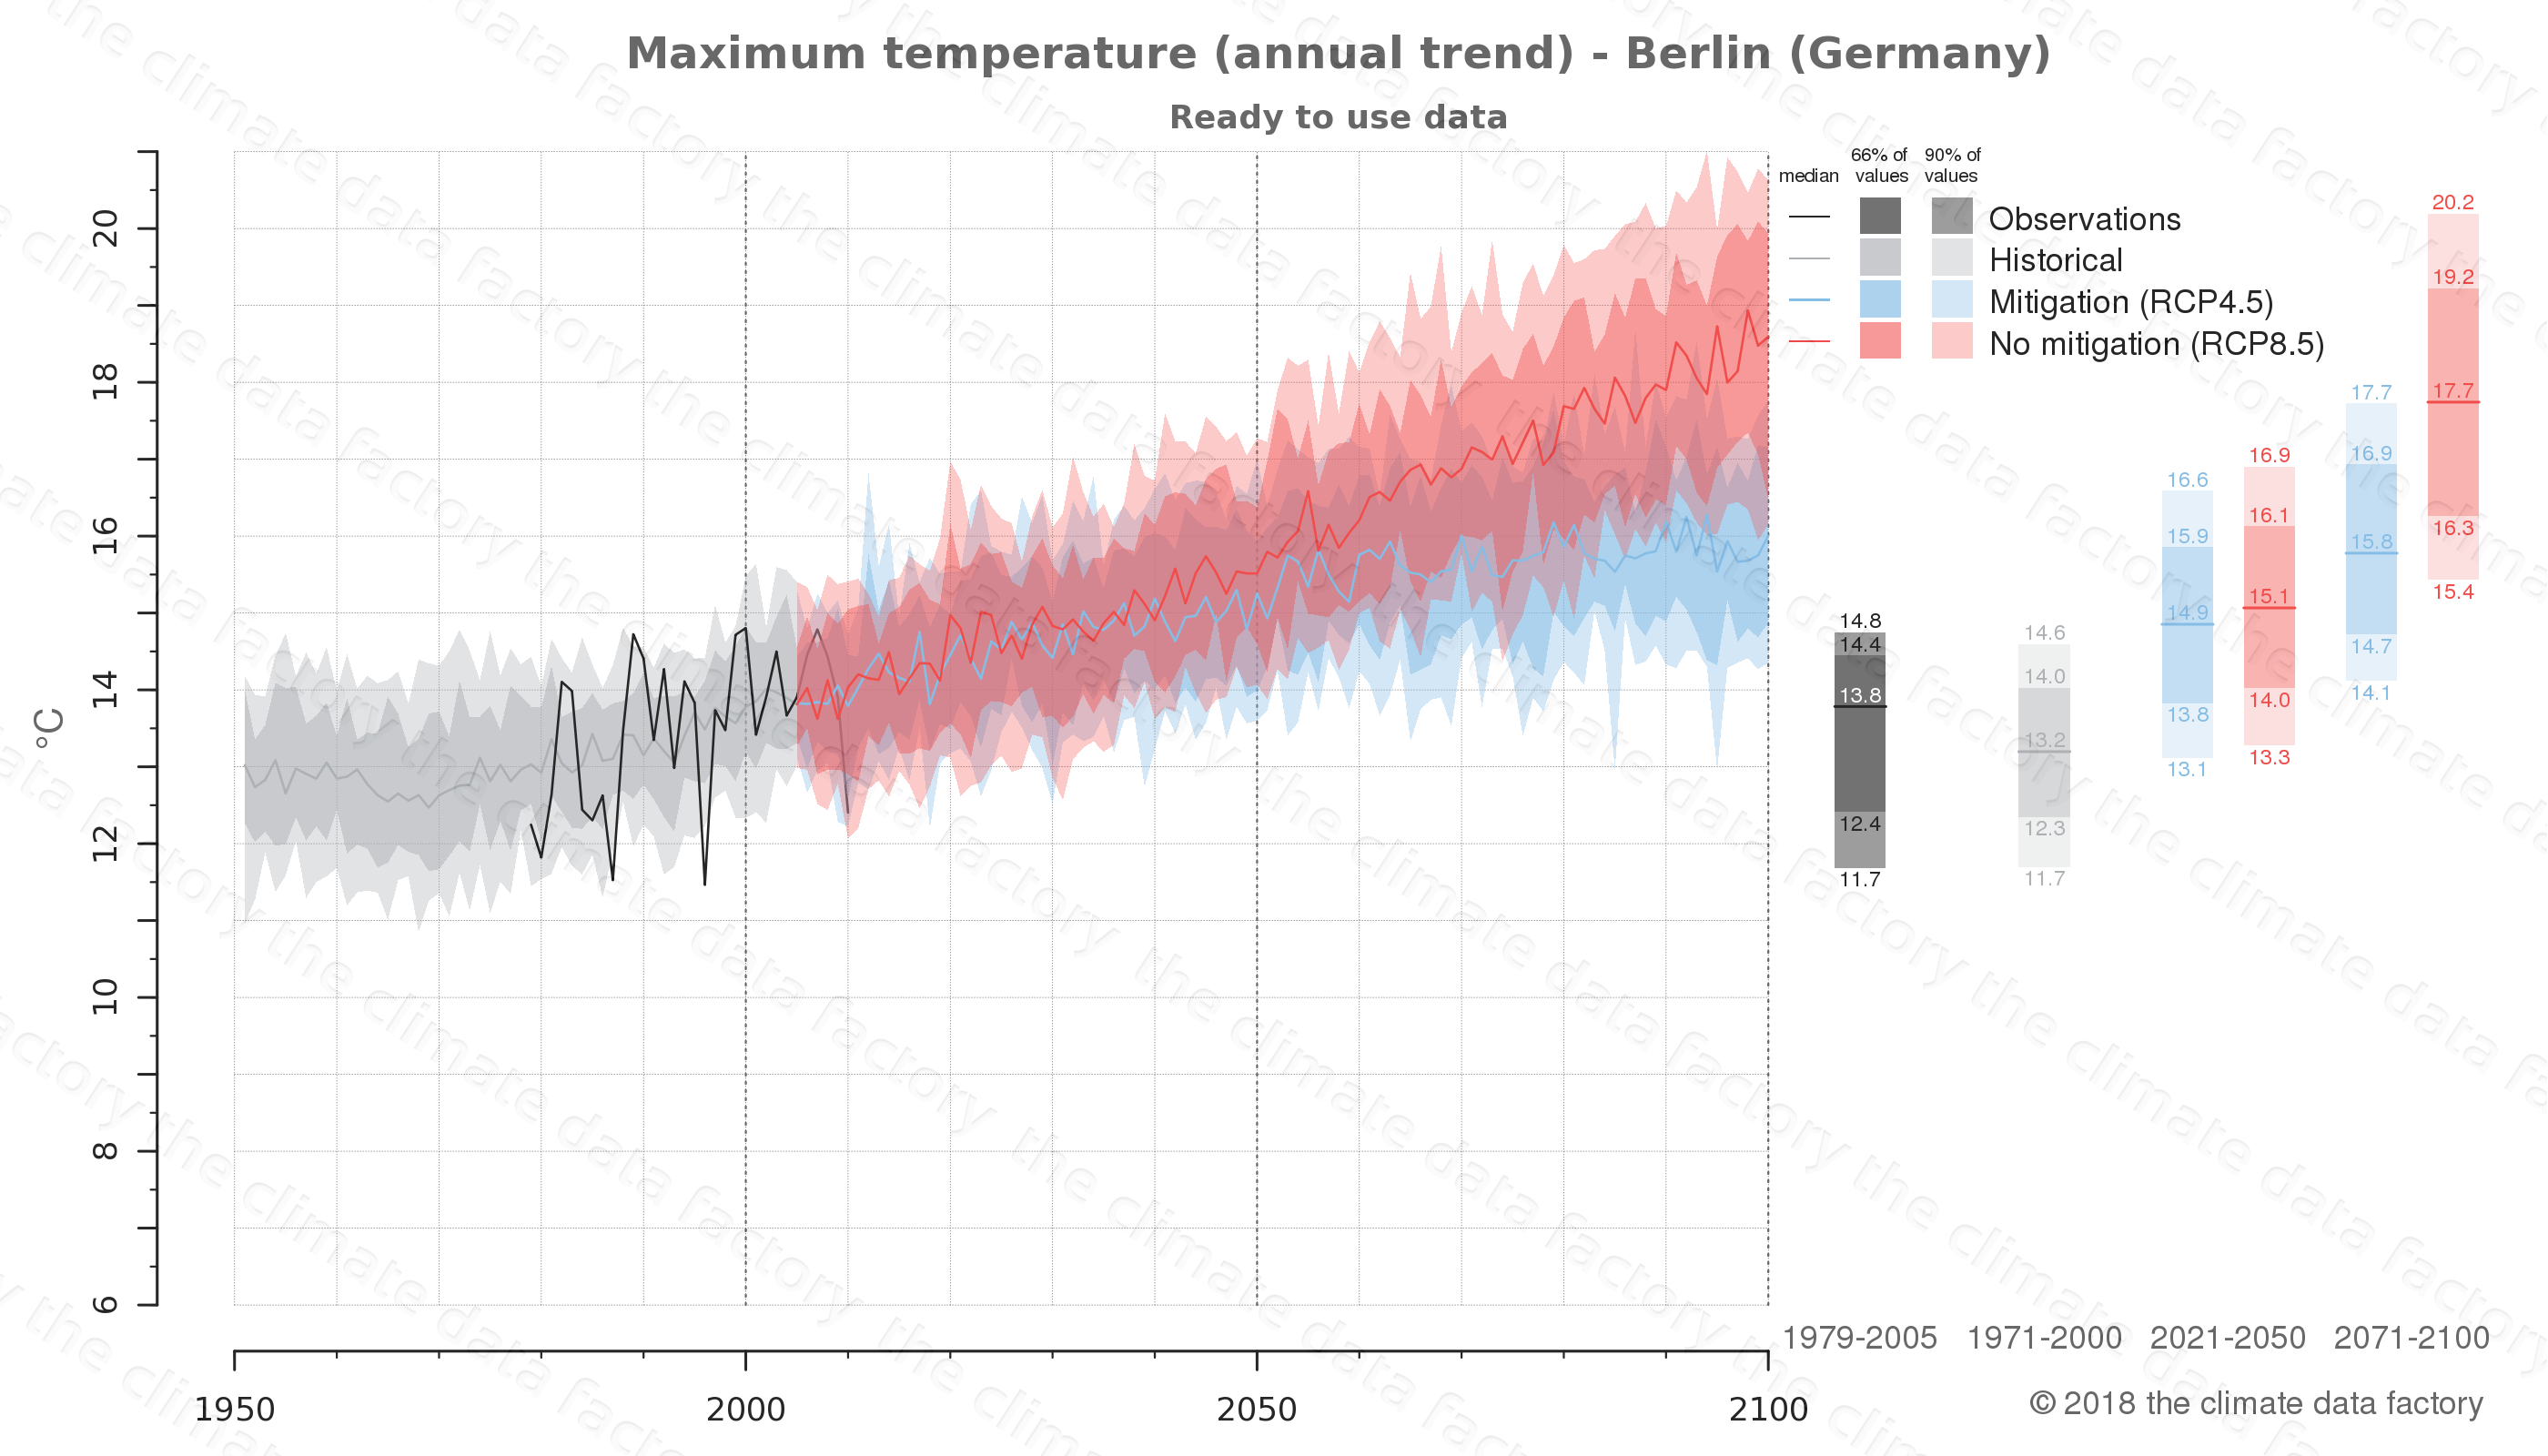 climate change data policy adaptation climate graph city data maximum-temperature berlin germany